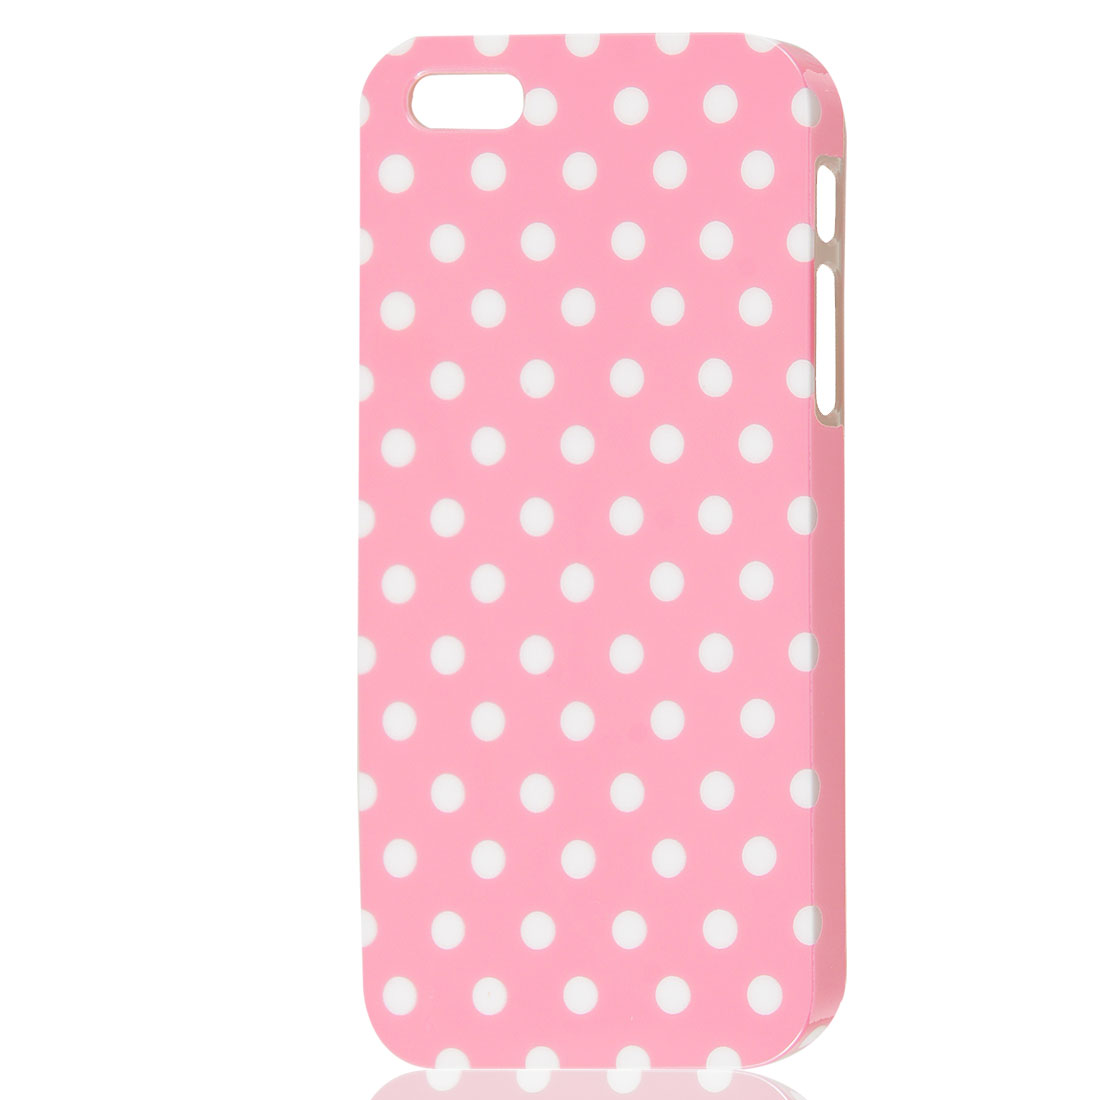 White Polka Dots Pattern Pink Hard Skin Case Cover for iPhone 5 5G